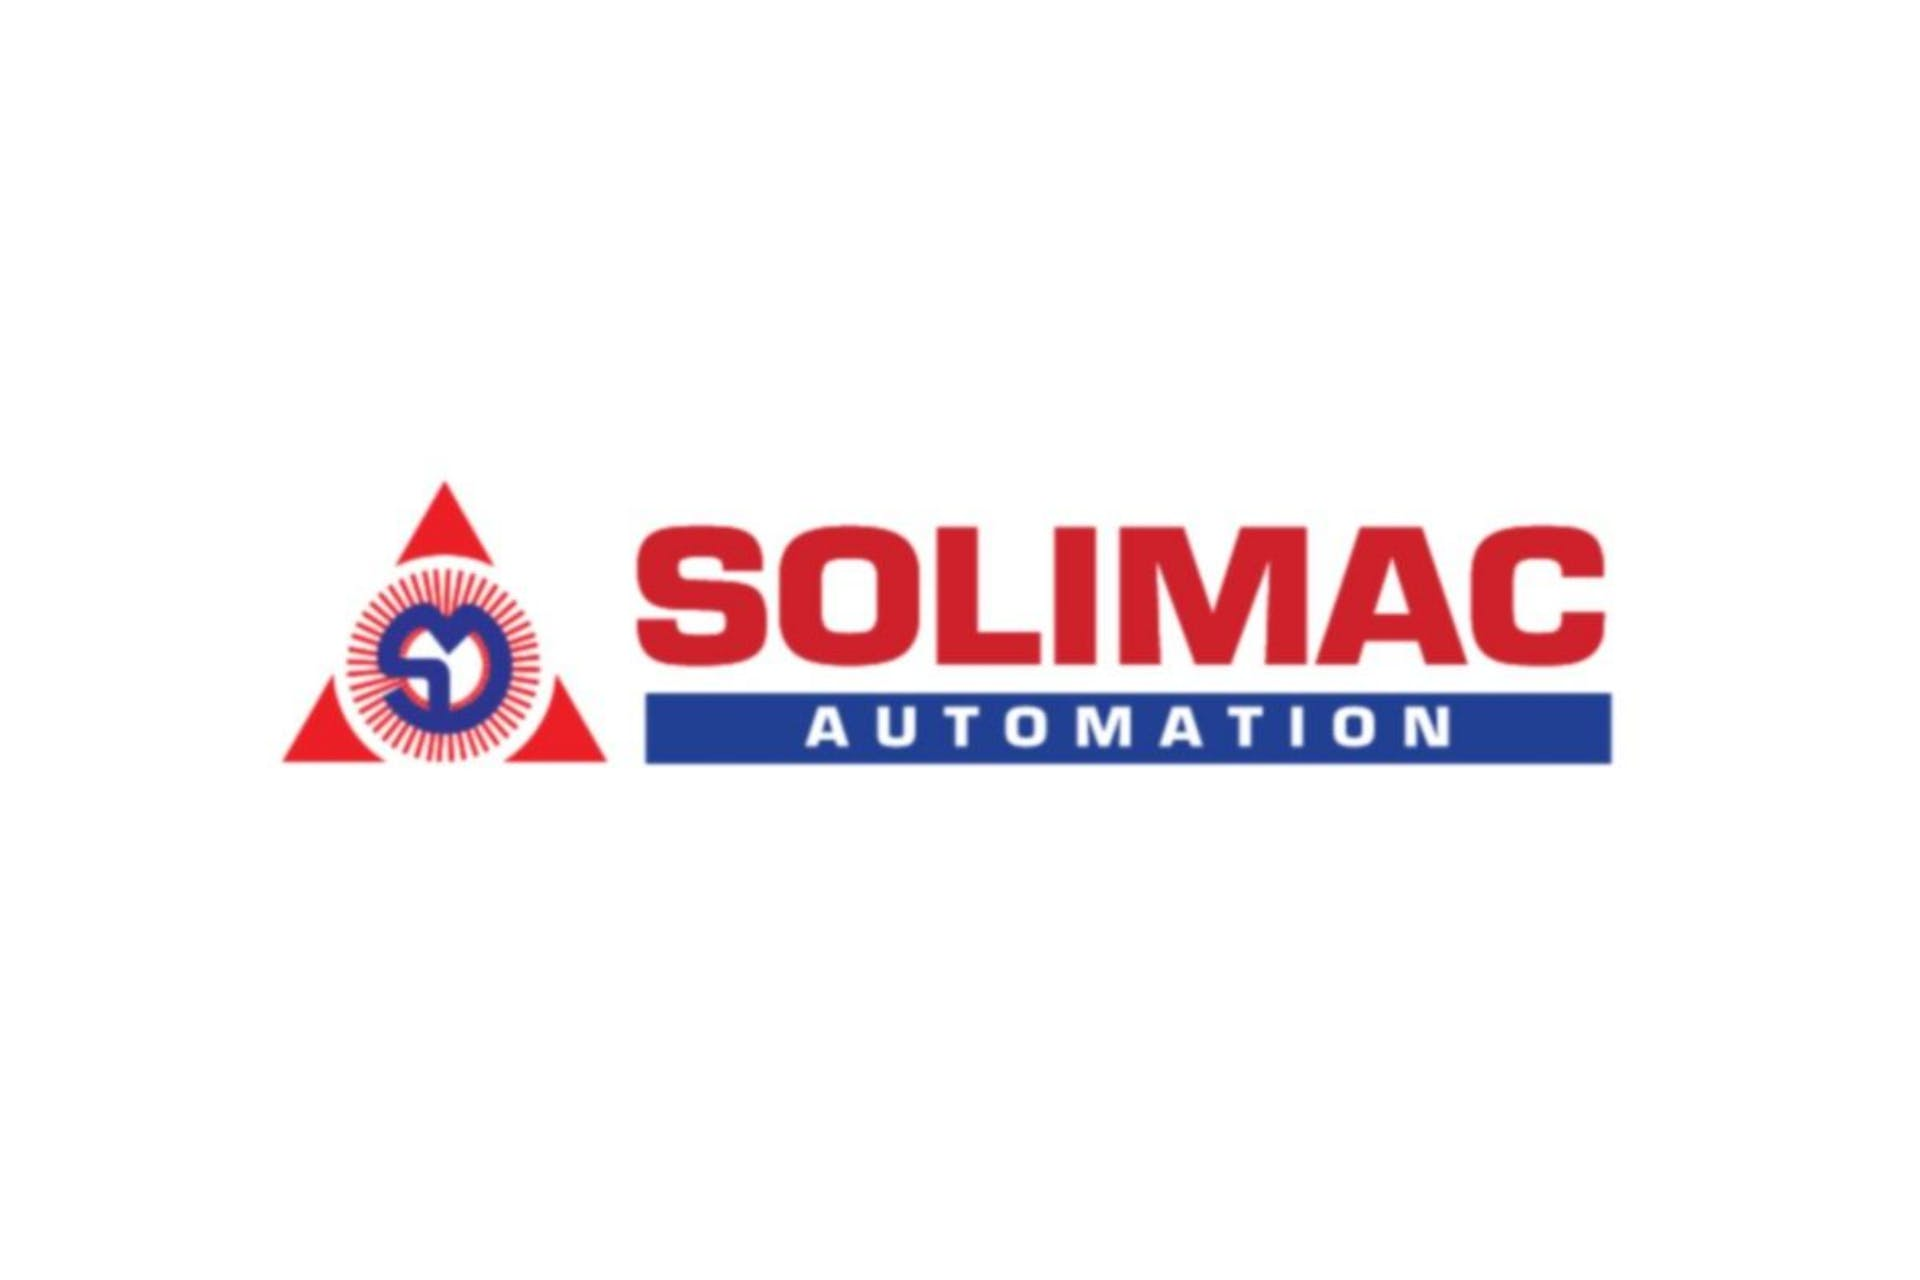 SOLIMAC AUTOMATION CO.,LTD.